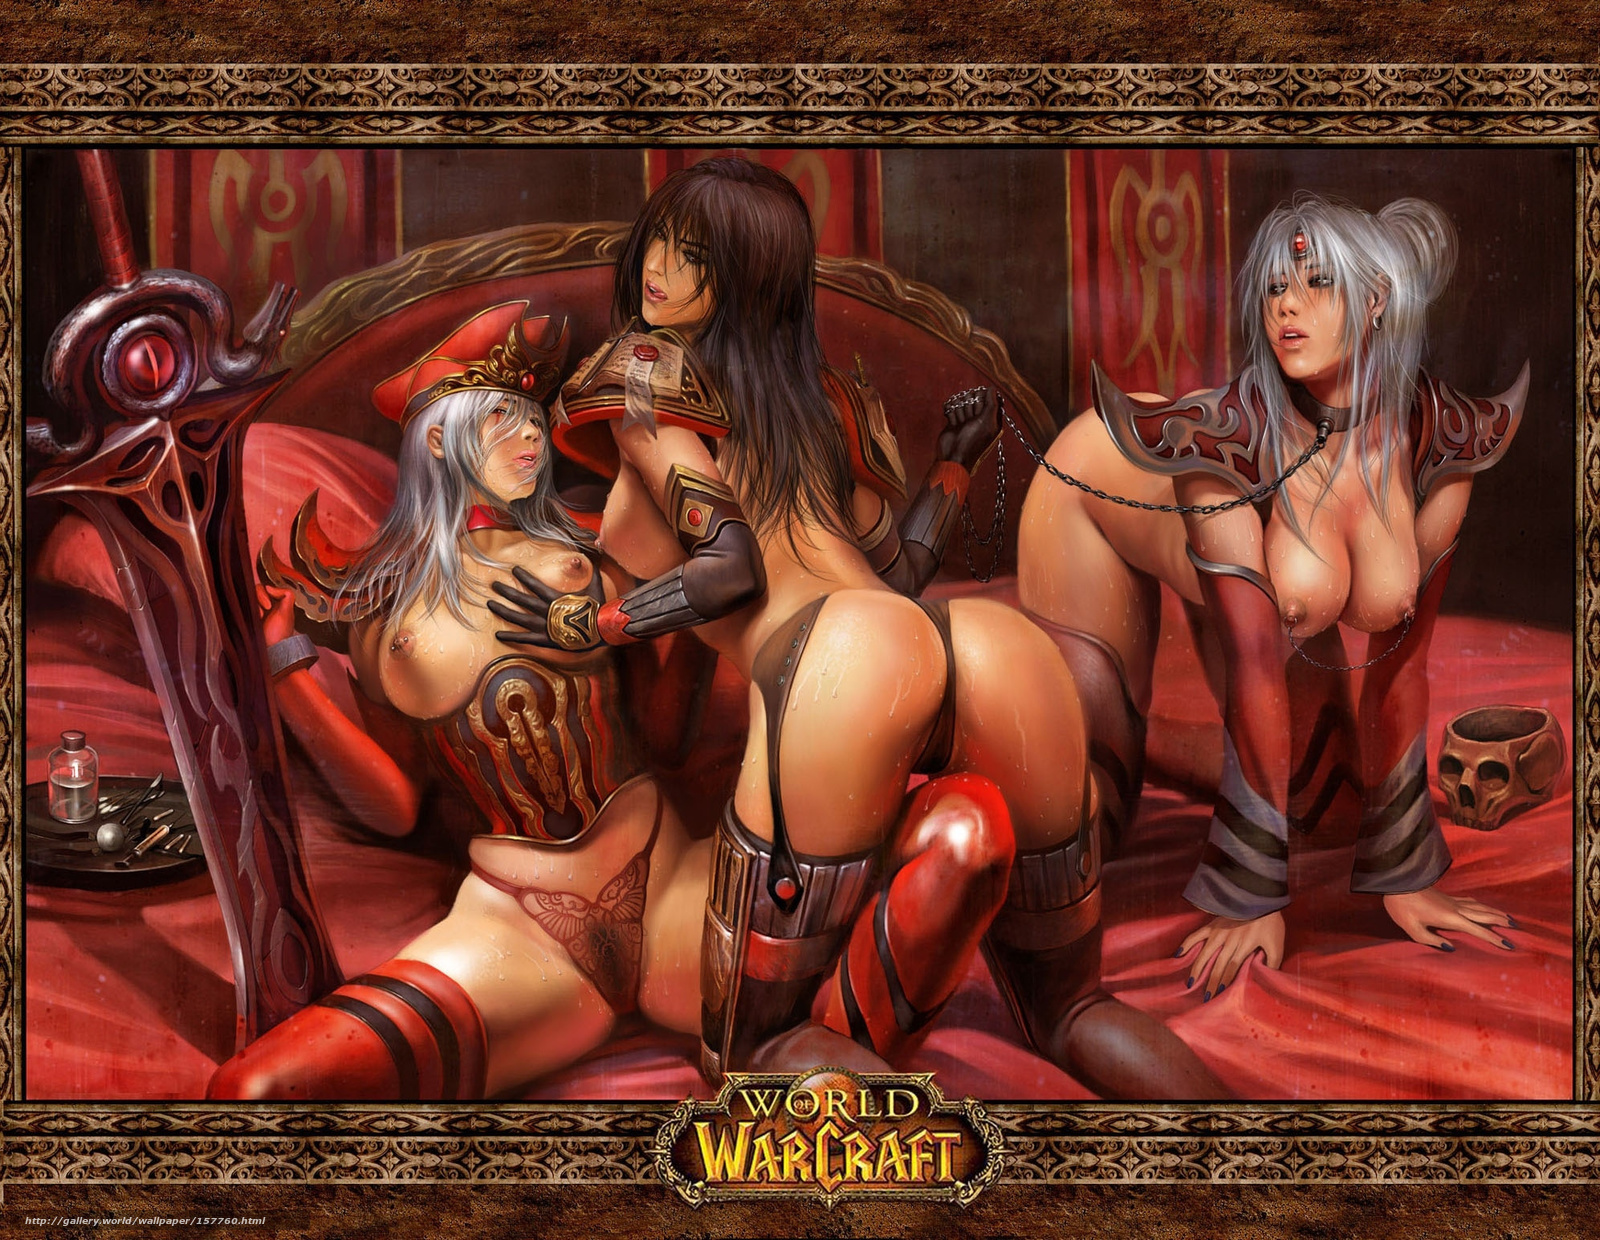 World of warcraft cartoon porn pics porn streaming